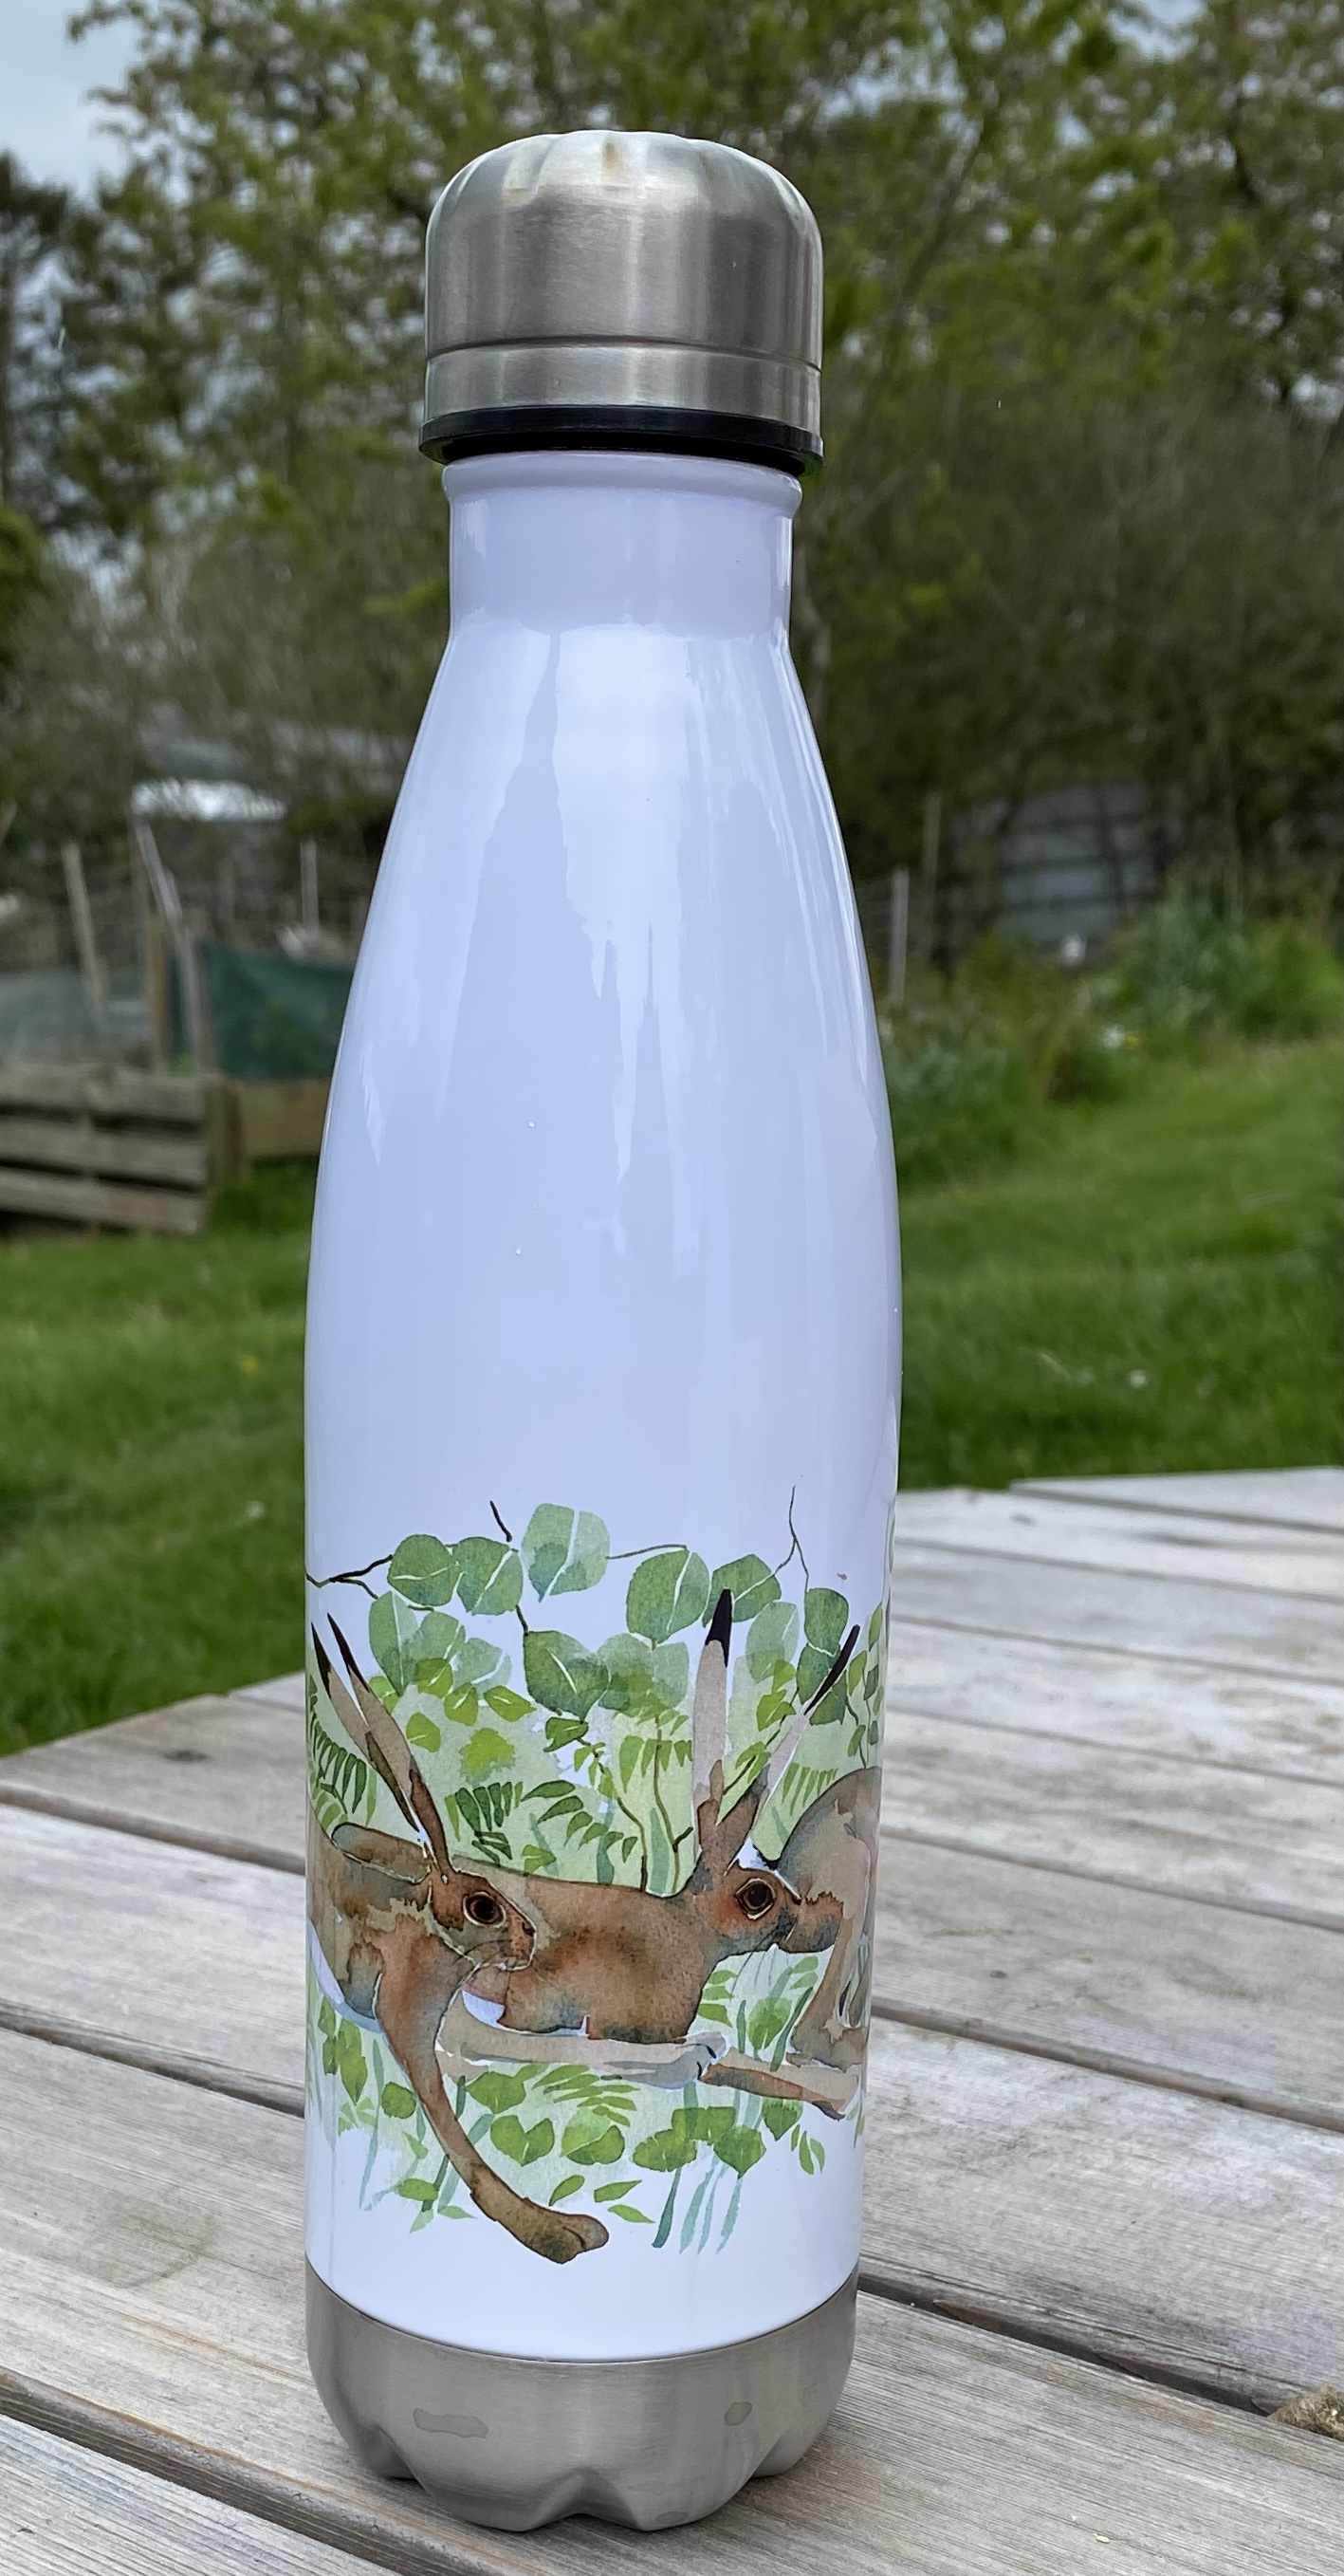 Stainless Steel Drinking Bottle - Hares image